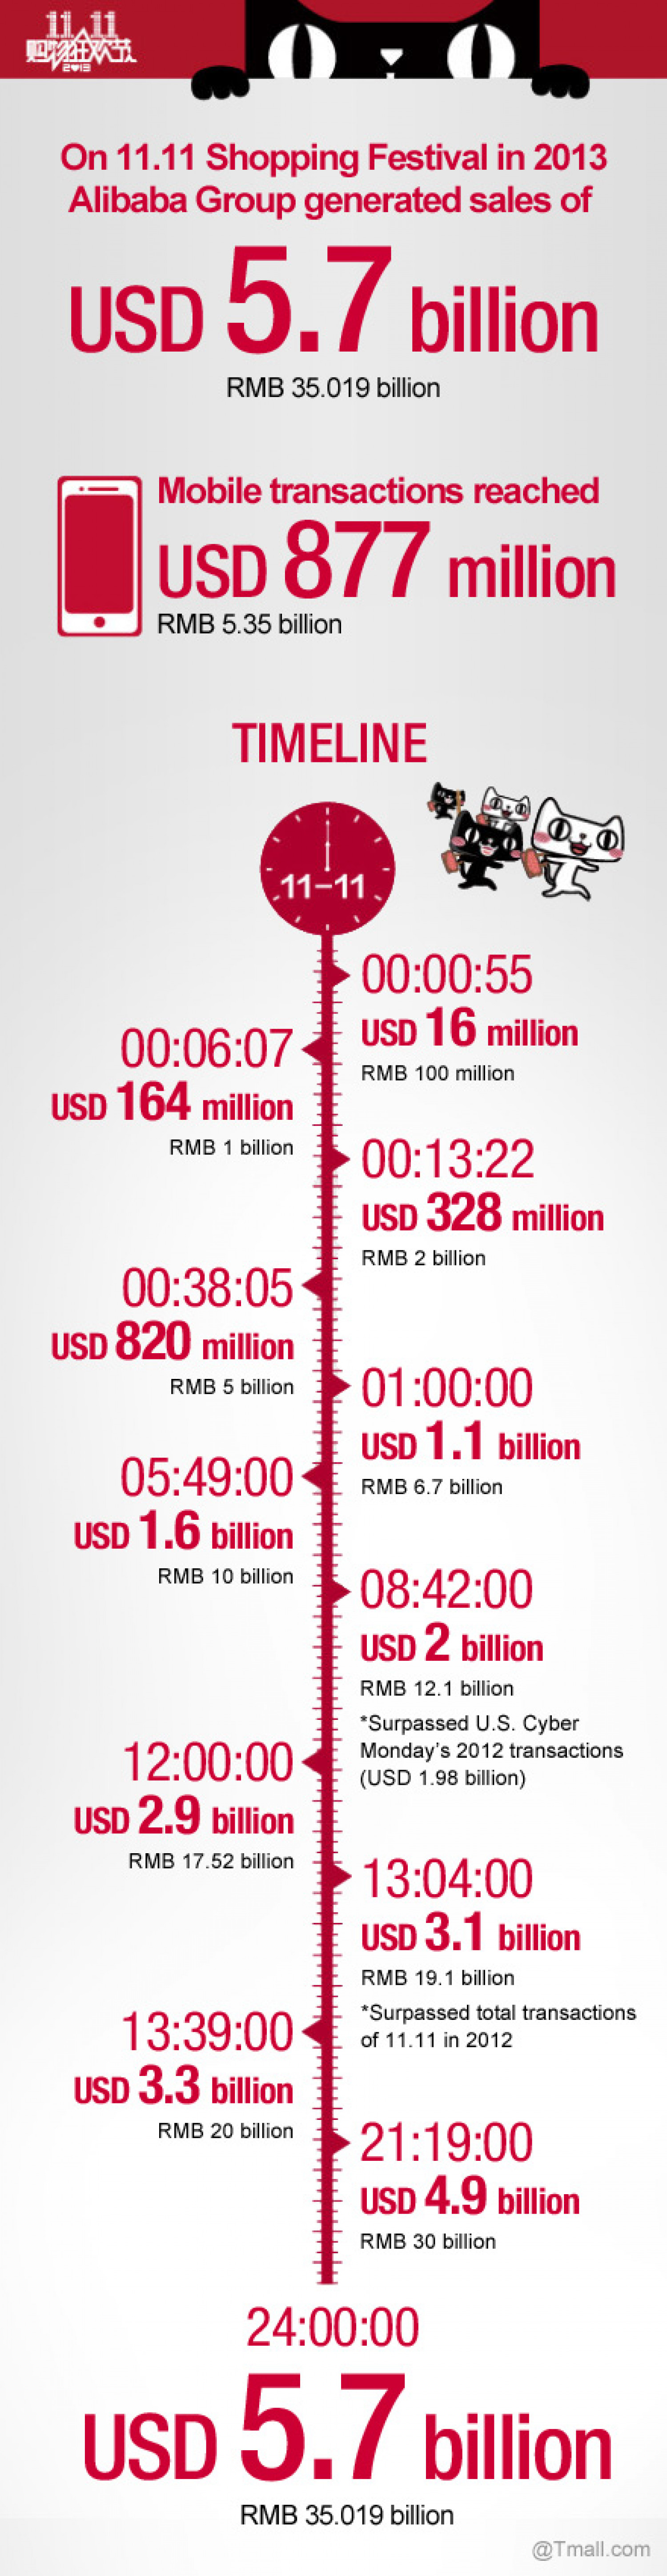 Tmall Tick Tock: A Singles' Day Shopping Timeline  Infographic